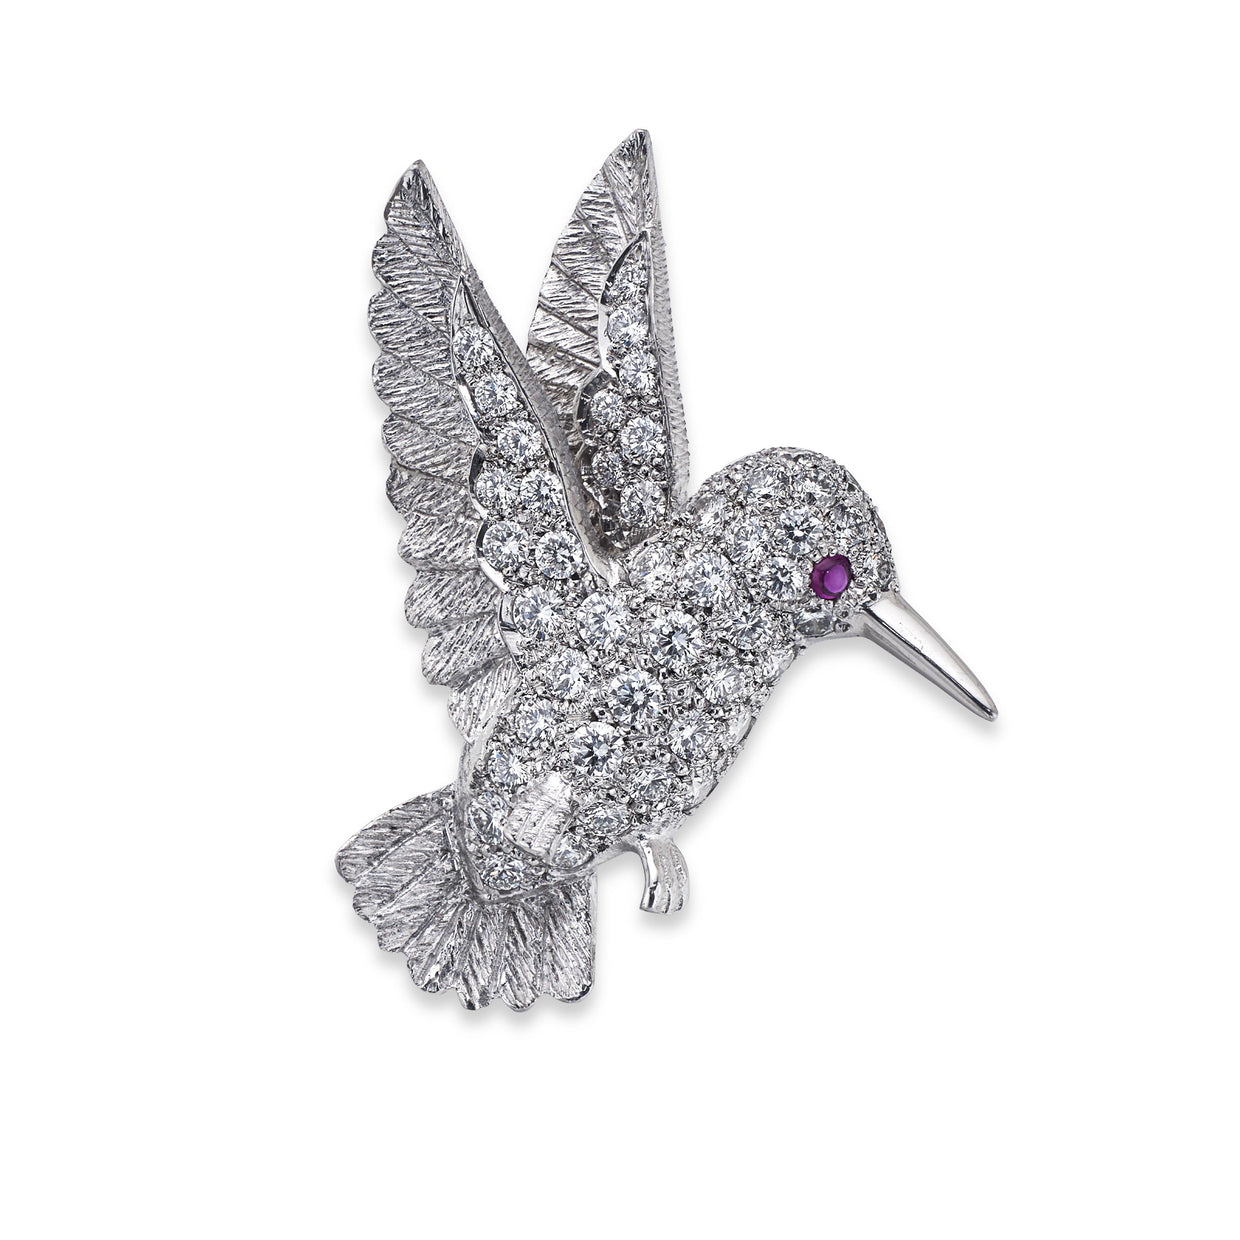 Hummingbird Brooch in White Gold set with Diamonds-Hamilton & Inches